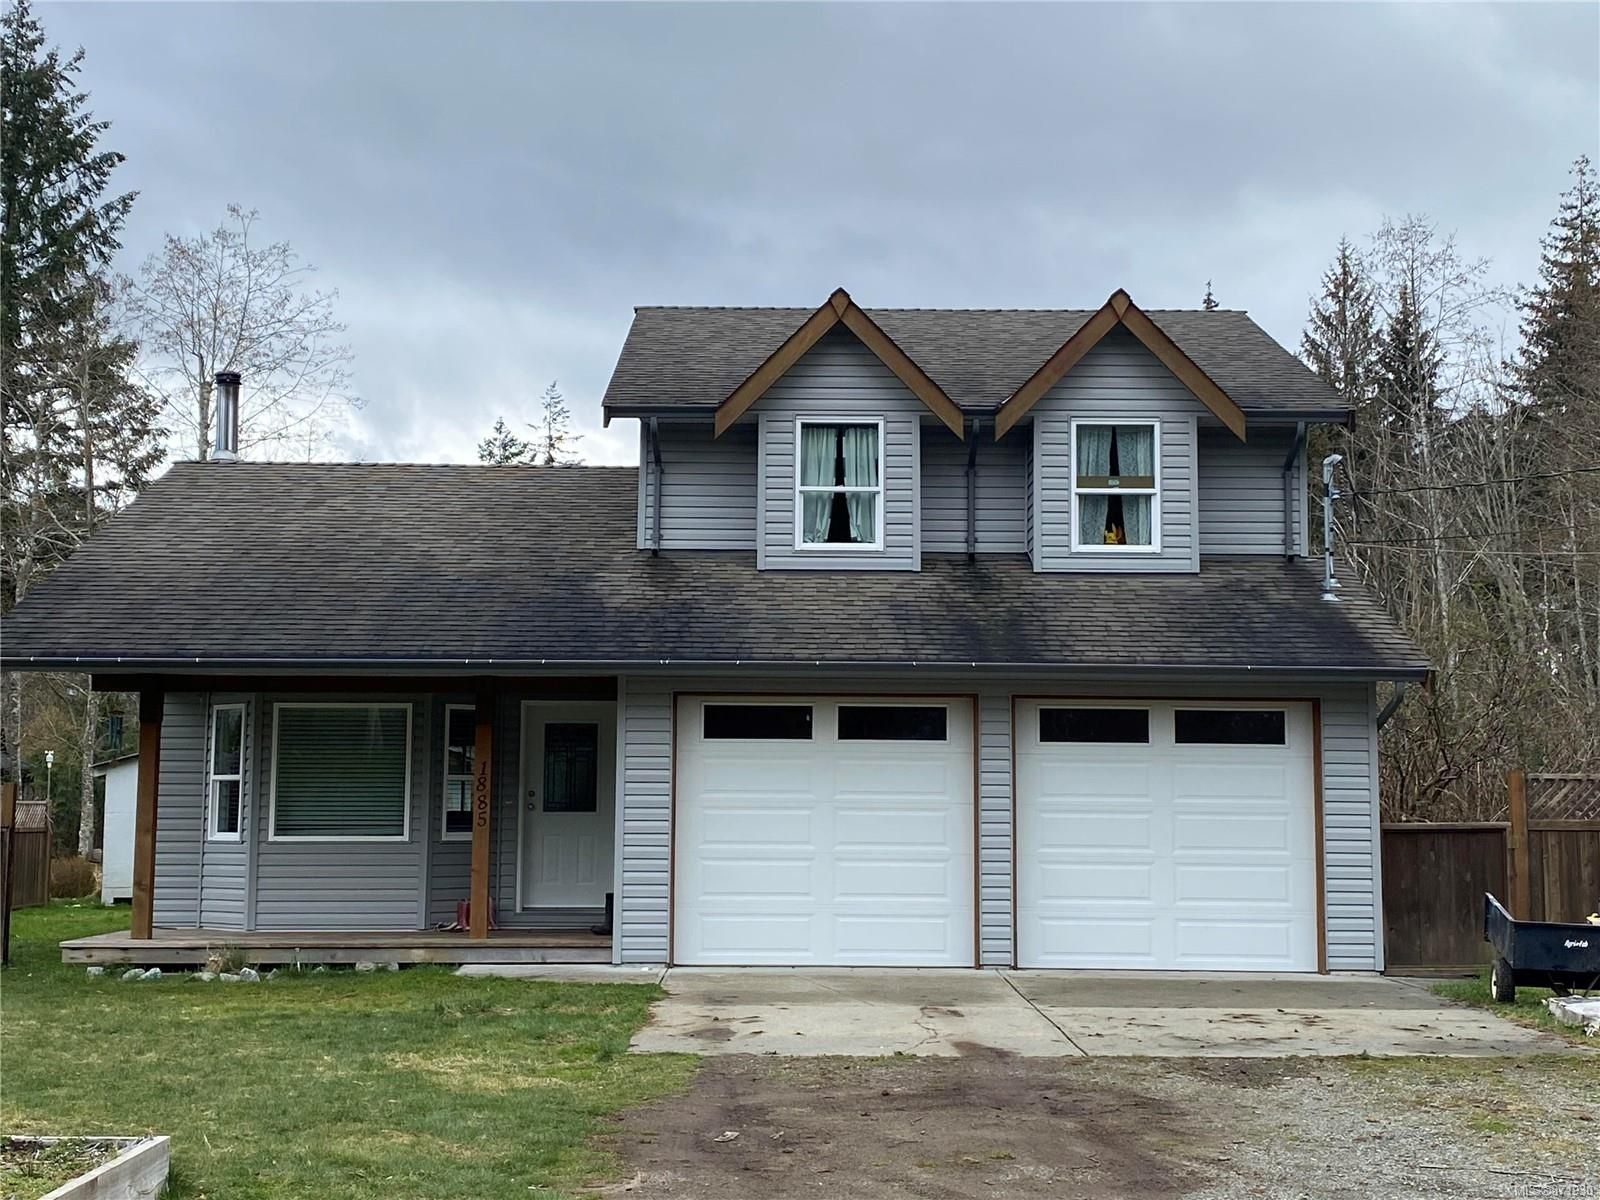 Main Photo: 1885 Evergreen Rd in : CR Campbell River Central House for sale (Campbell River)  : MLS®# 871930